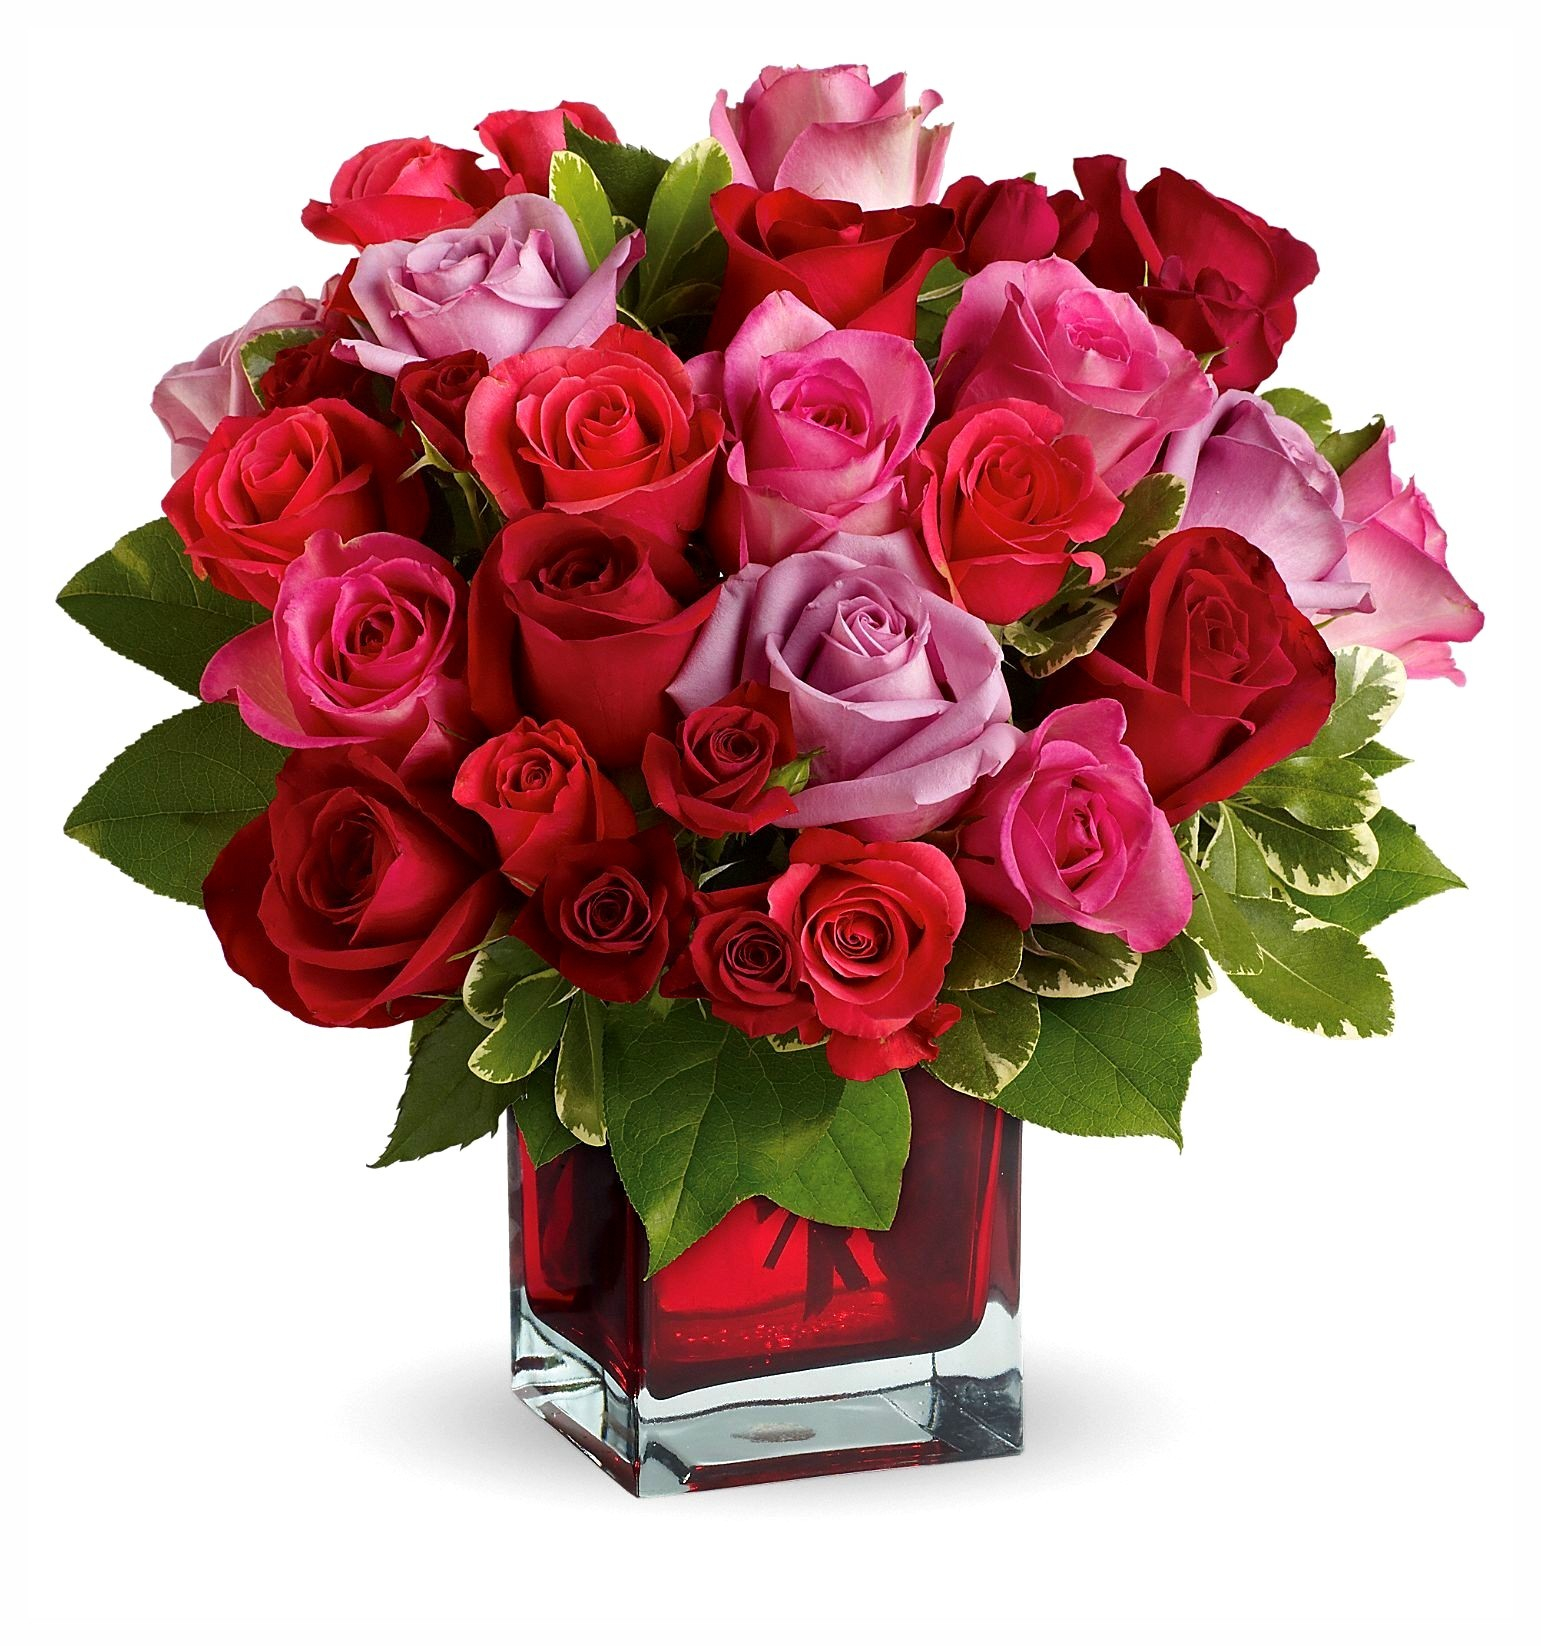 001 A Beautiful 50 Mix Color Roses Arrangement In A Plain Color Glass Vase within size 1541 X 1646